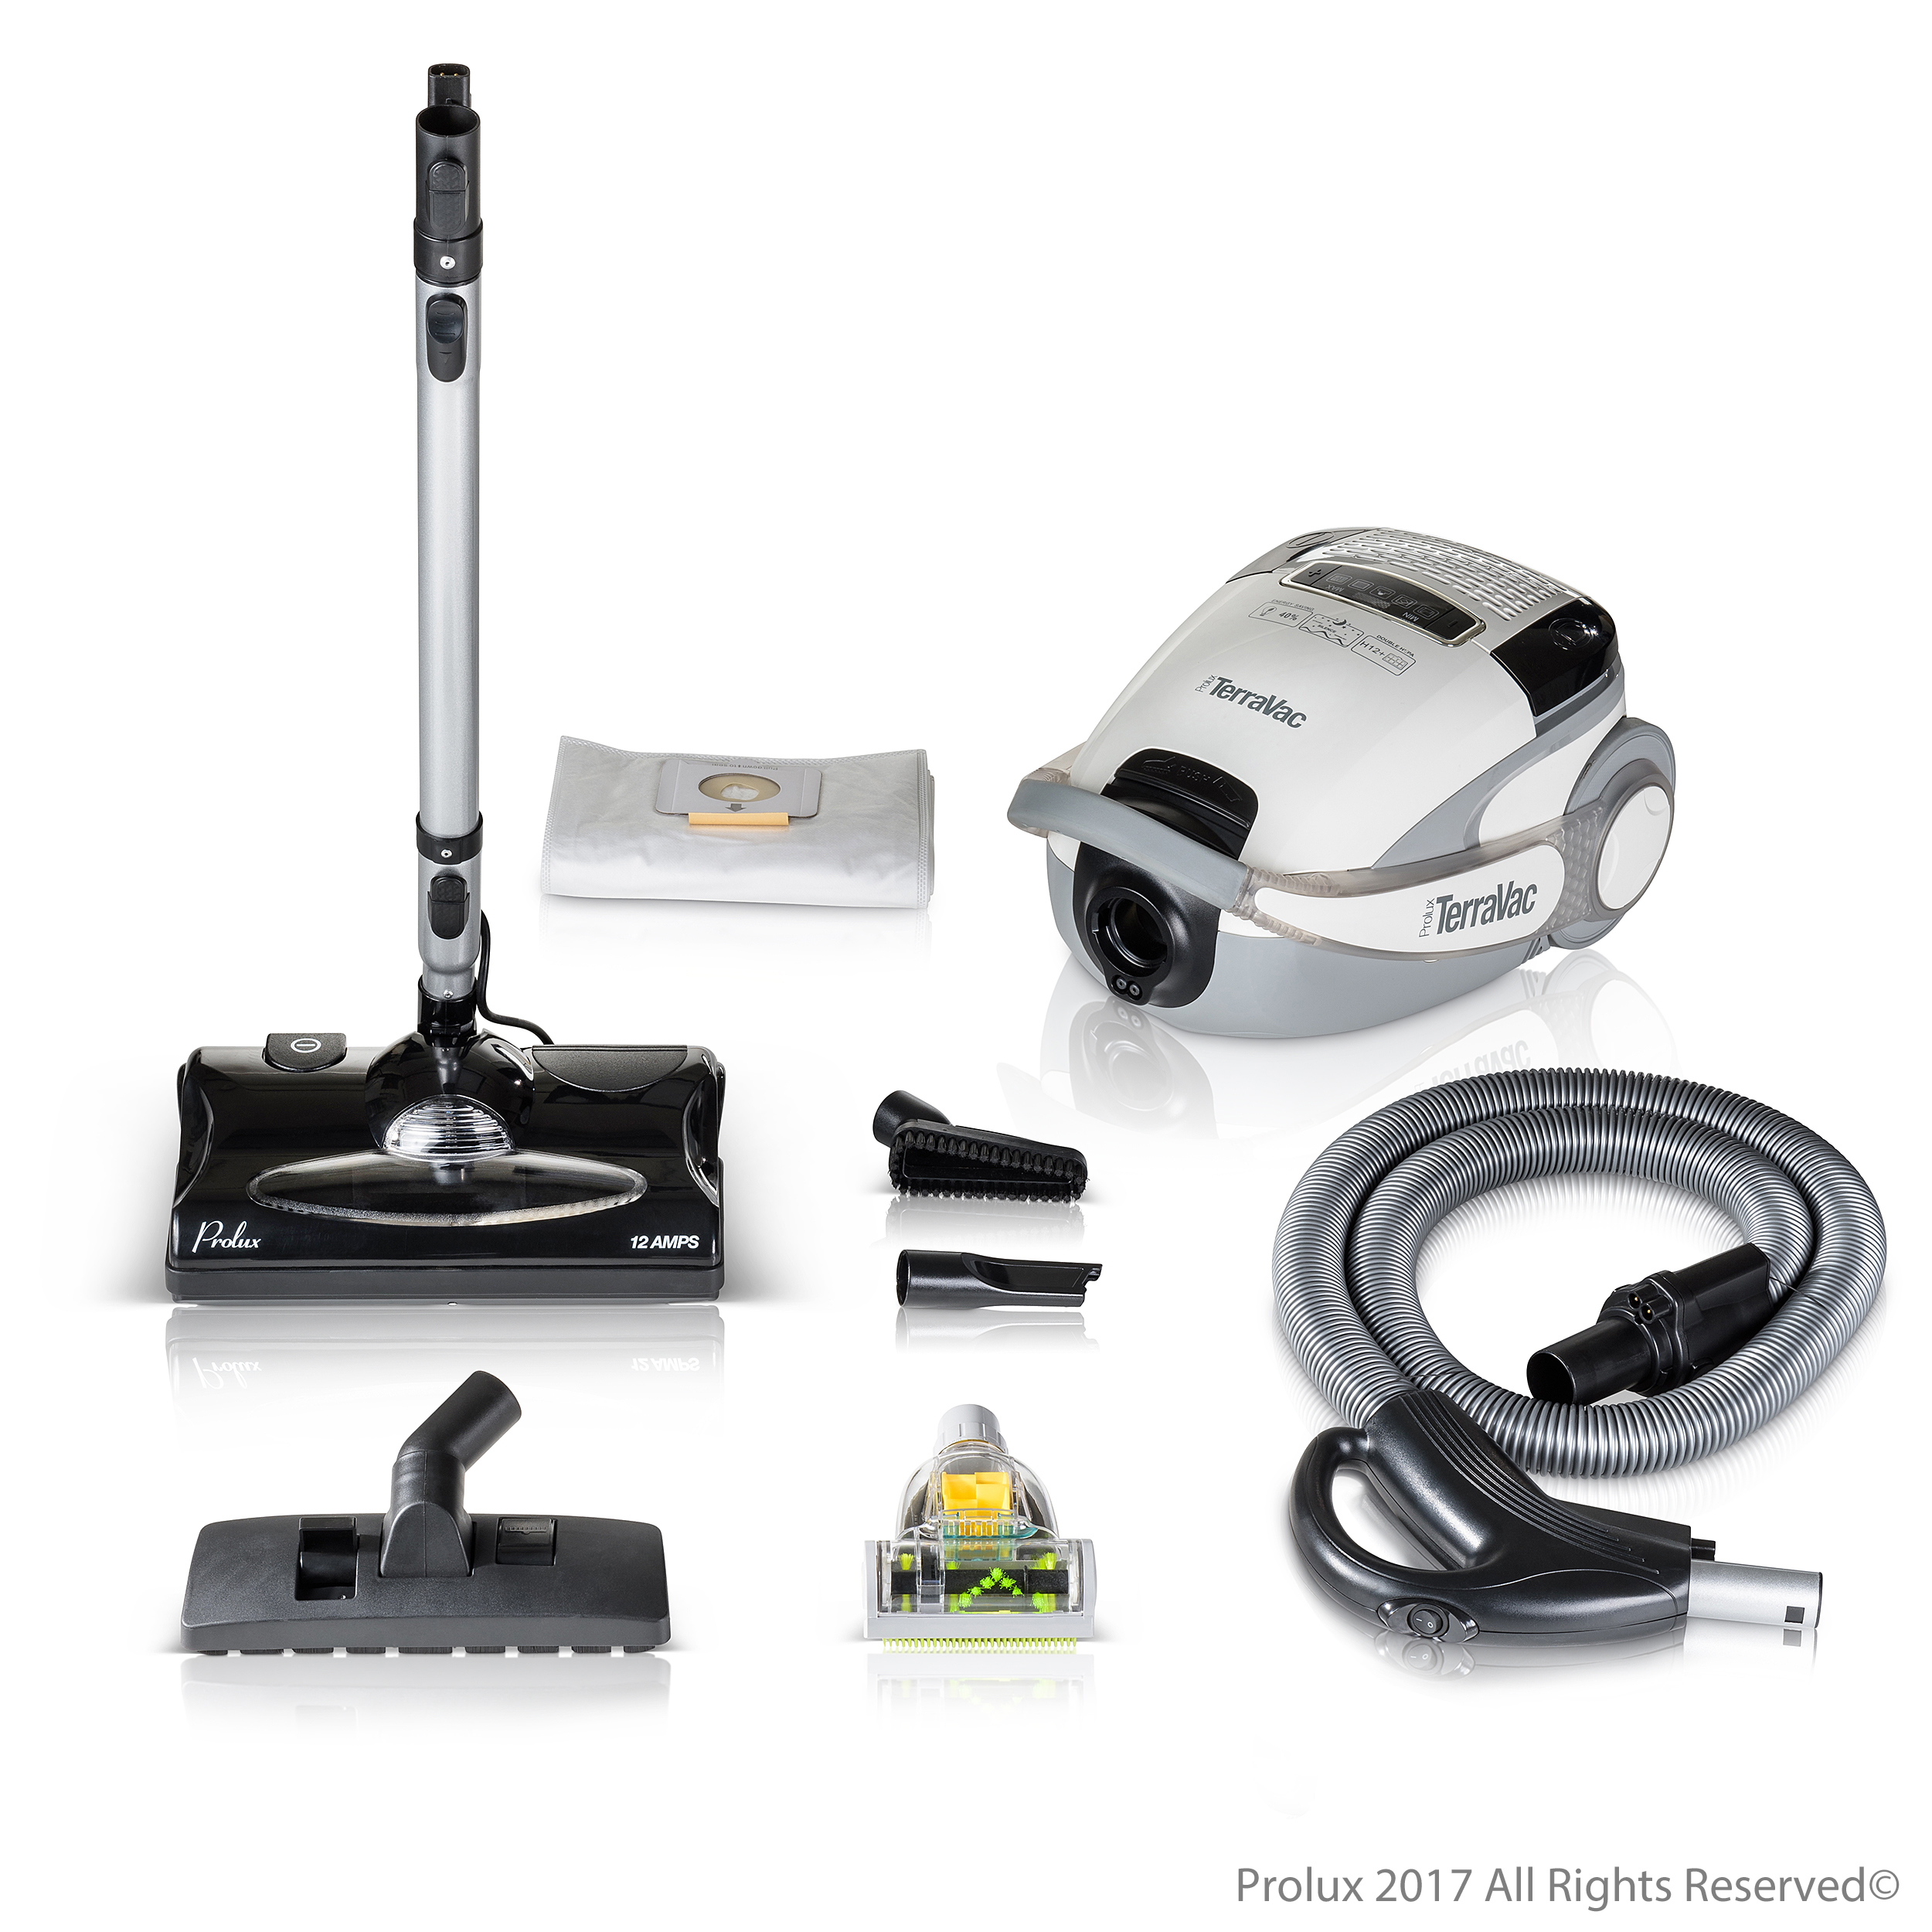 Prolux TerraVac 5 Speed Quiet Canister Vacuum Cleaner with sealed HEPA Filter